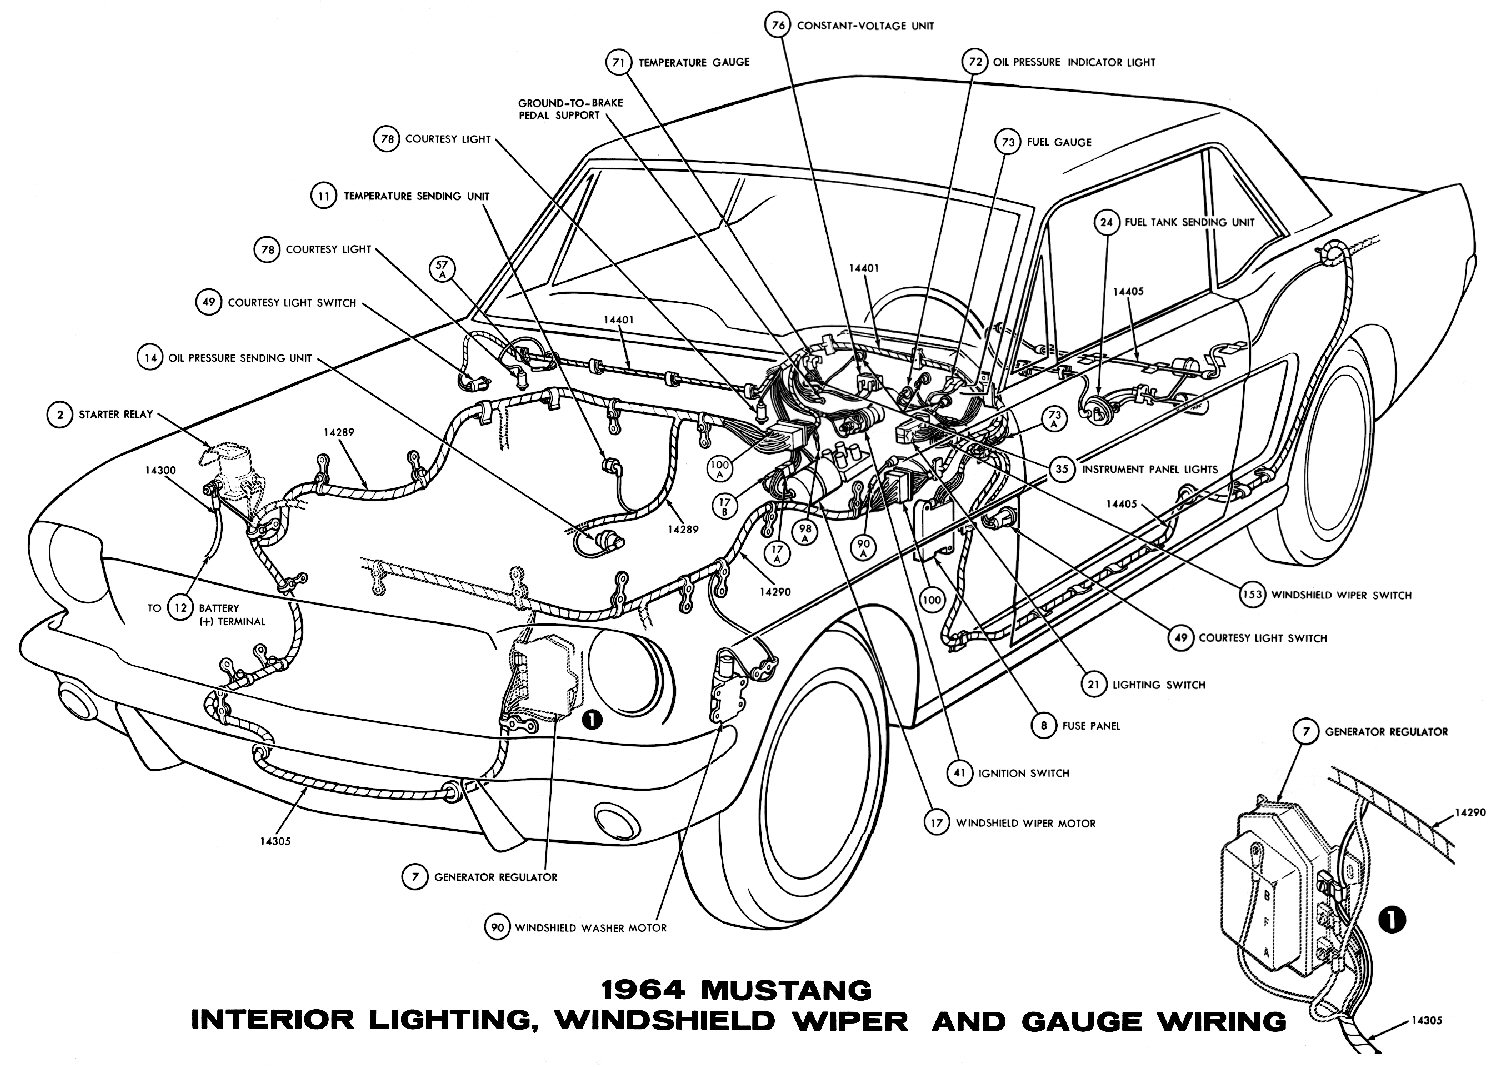 1966 mustang signal light wiring 1966 mustang courtesy light wiring diagram